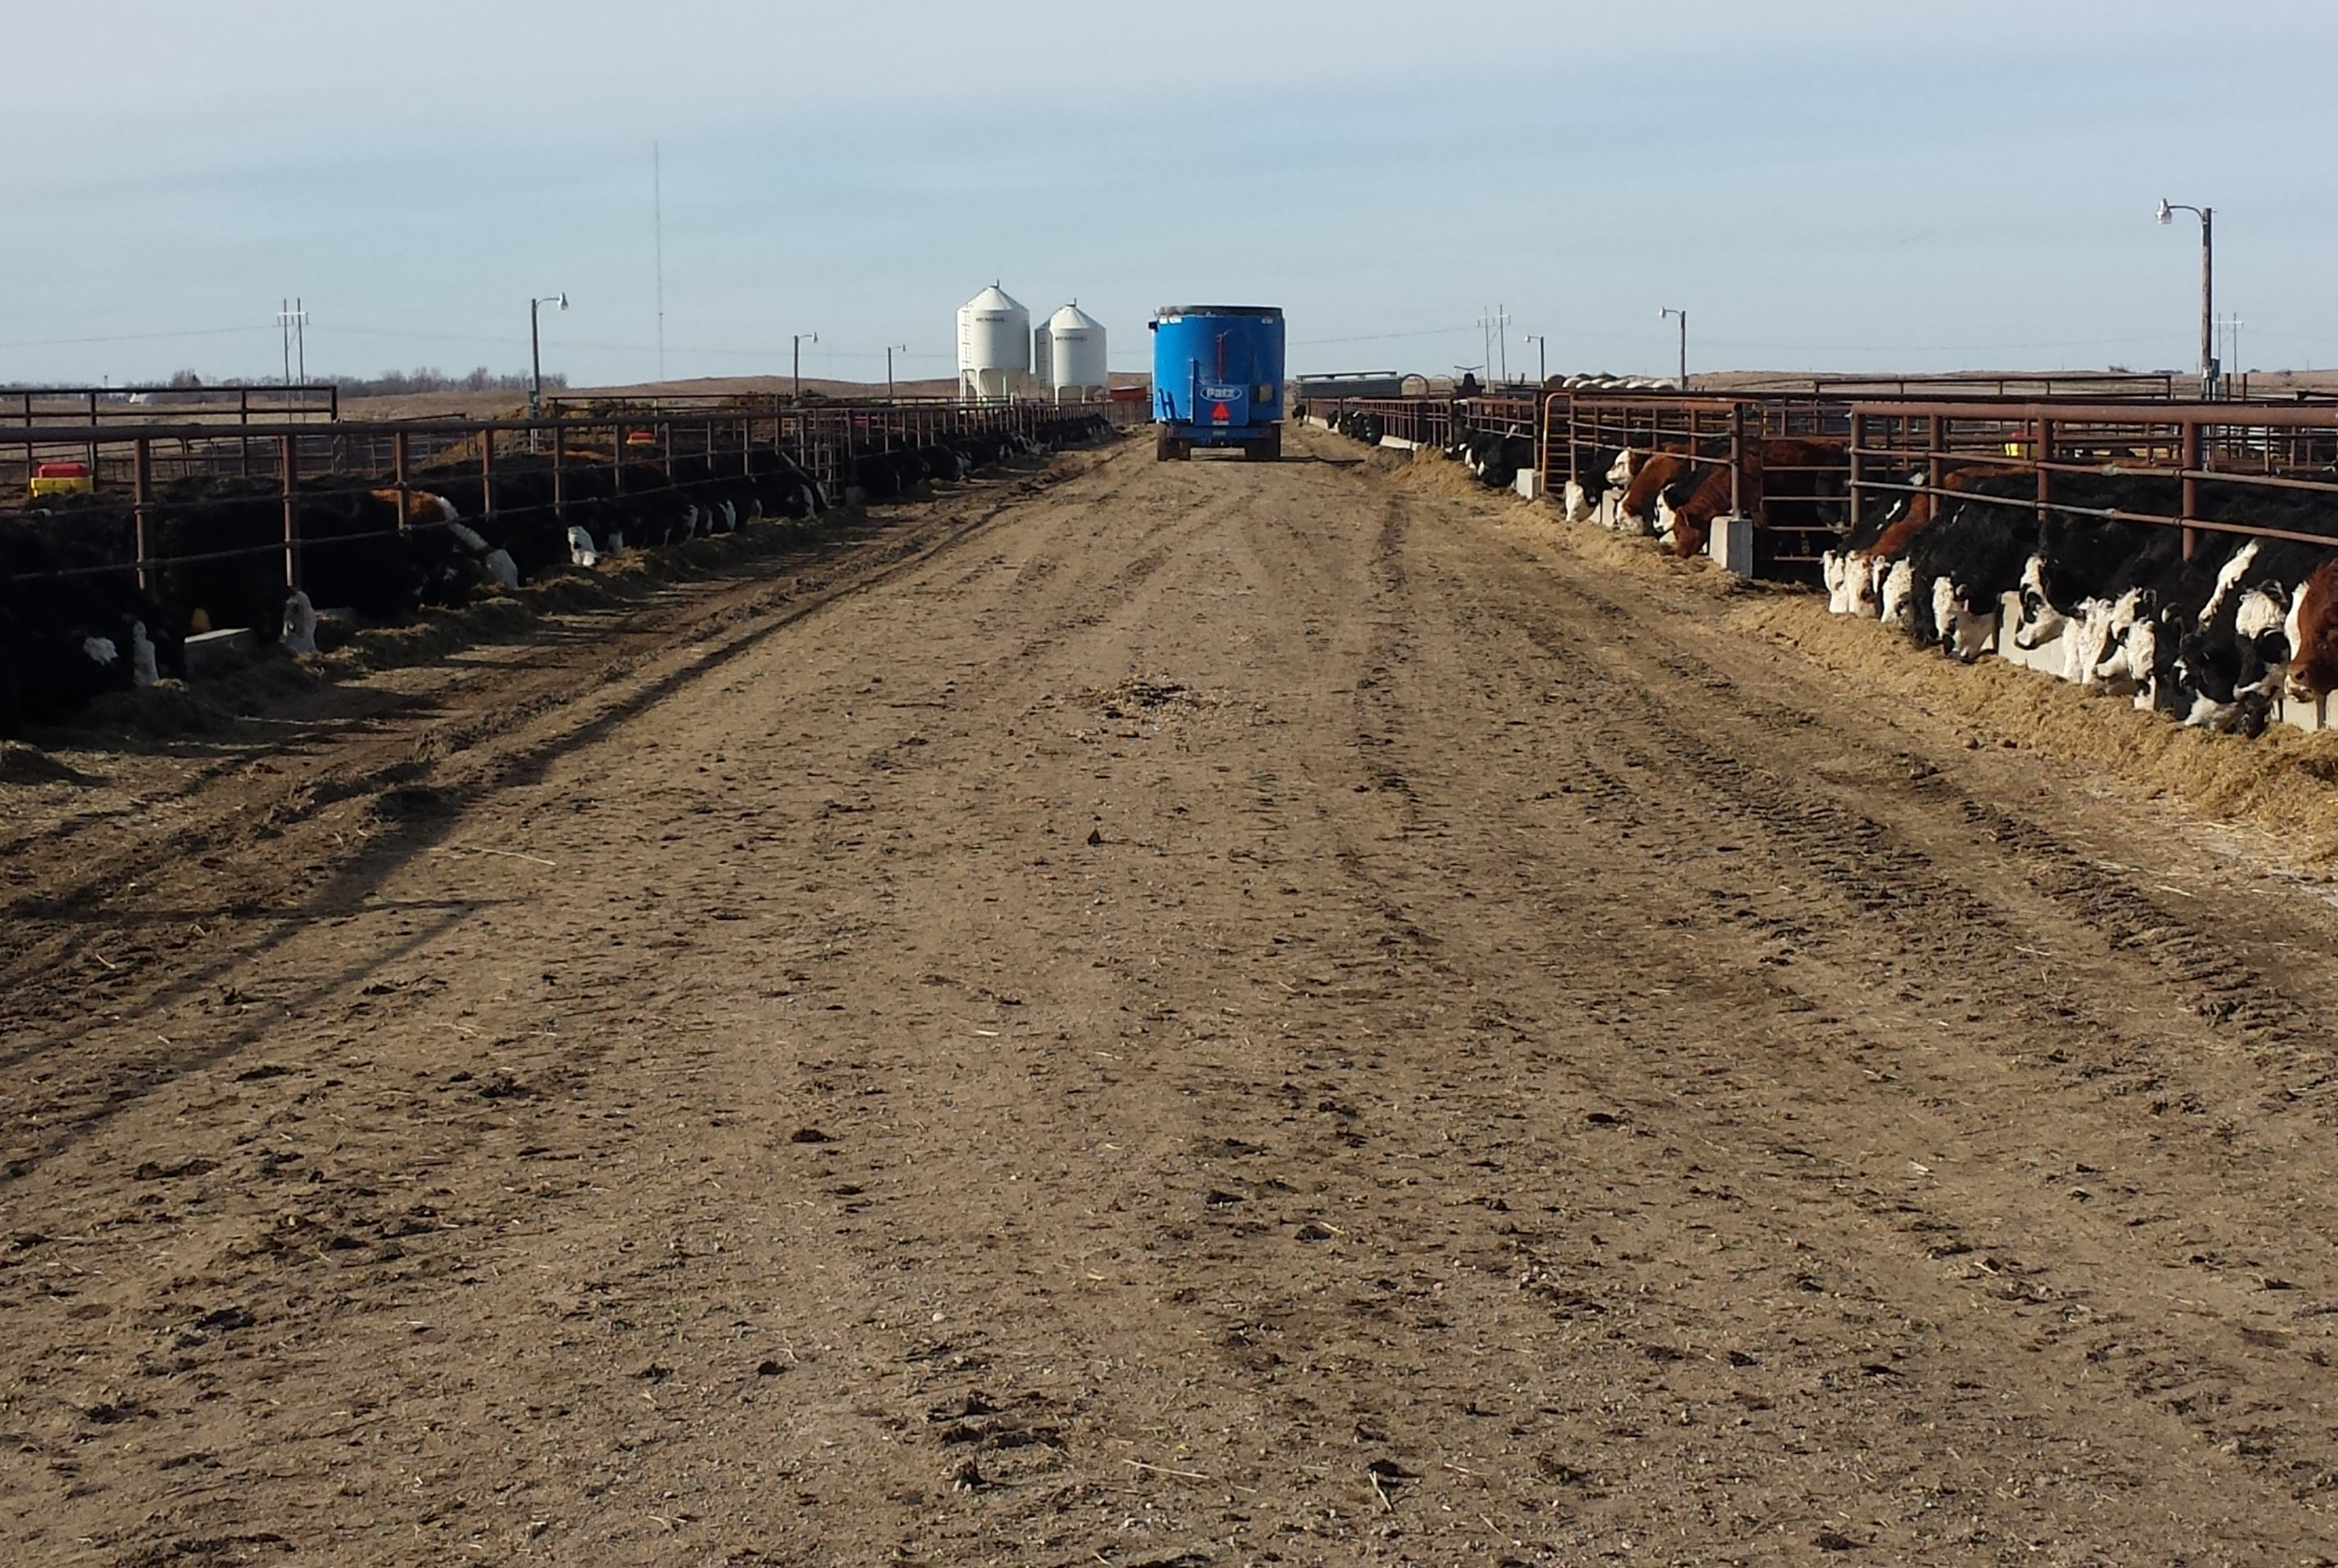 ELSTON FEEDLOT LOOK AT ALL THEM BALDIES